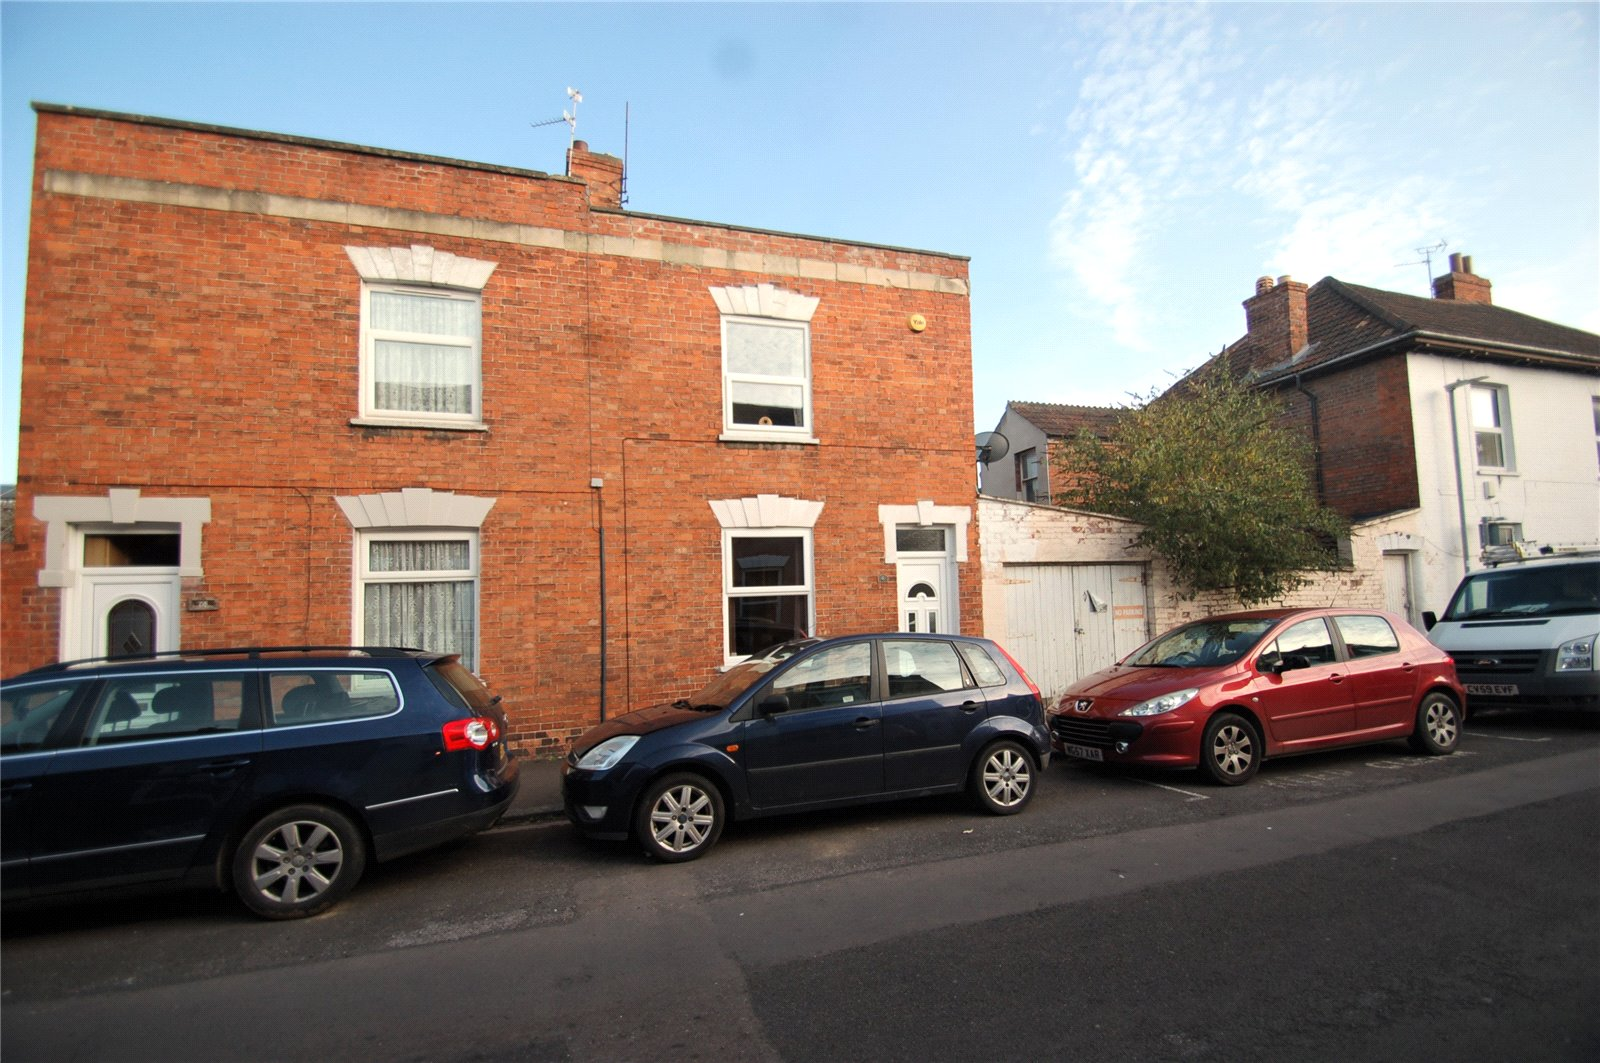 2 Bedrooms Property for sale in Edward Street Bridgwater Somerset TA6